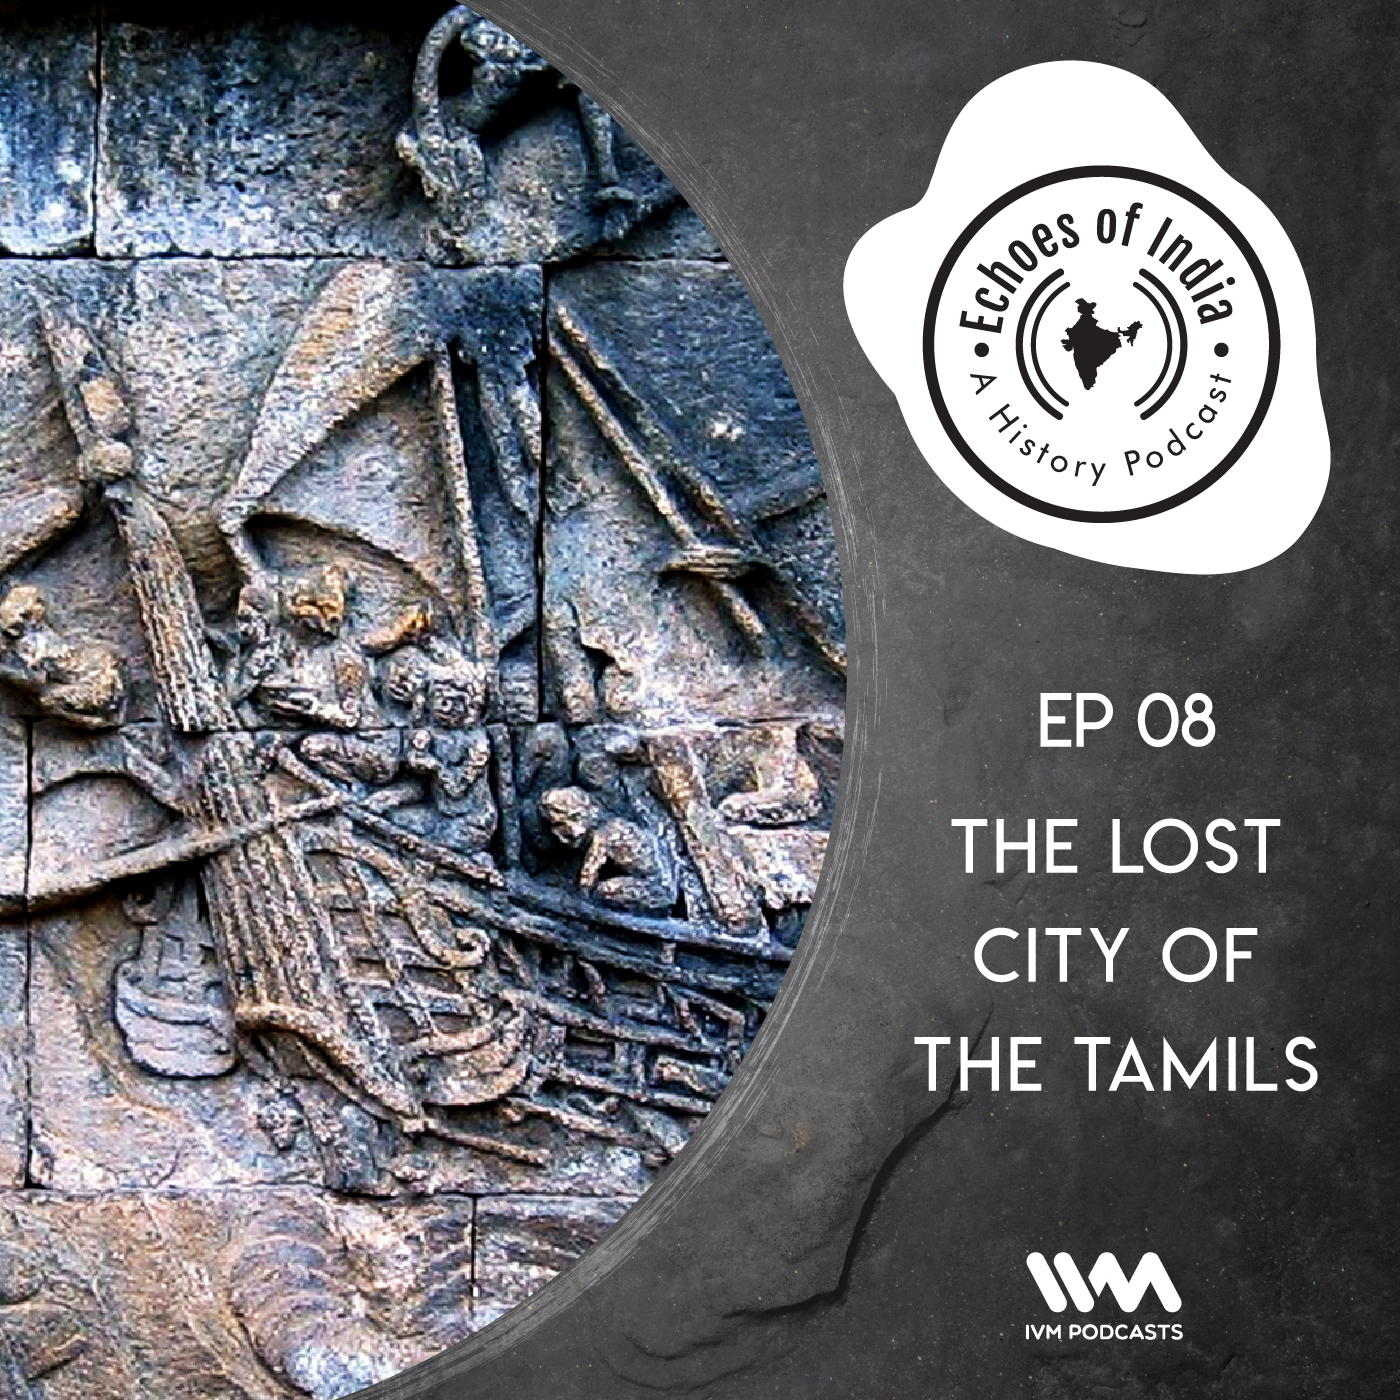 Ep. 08: The Lost City of the Tamils